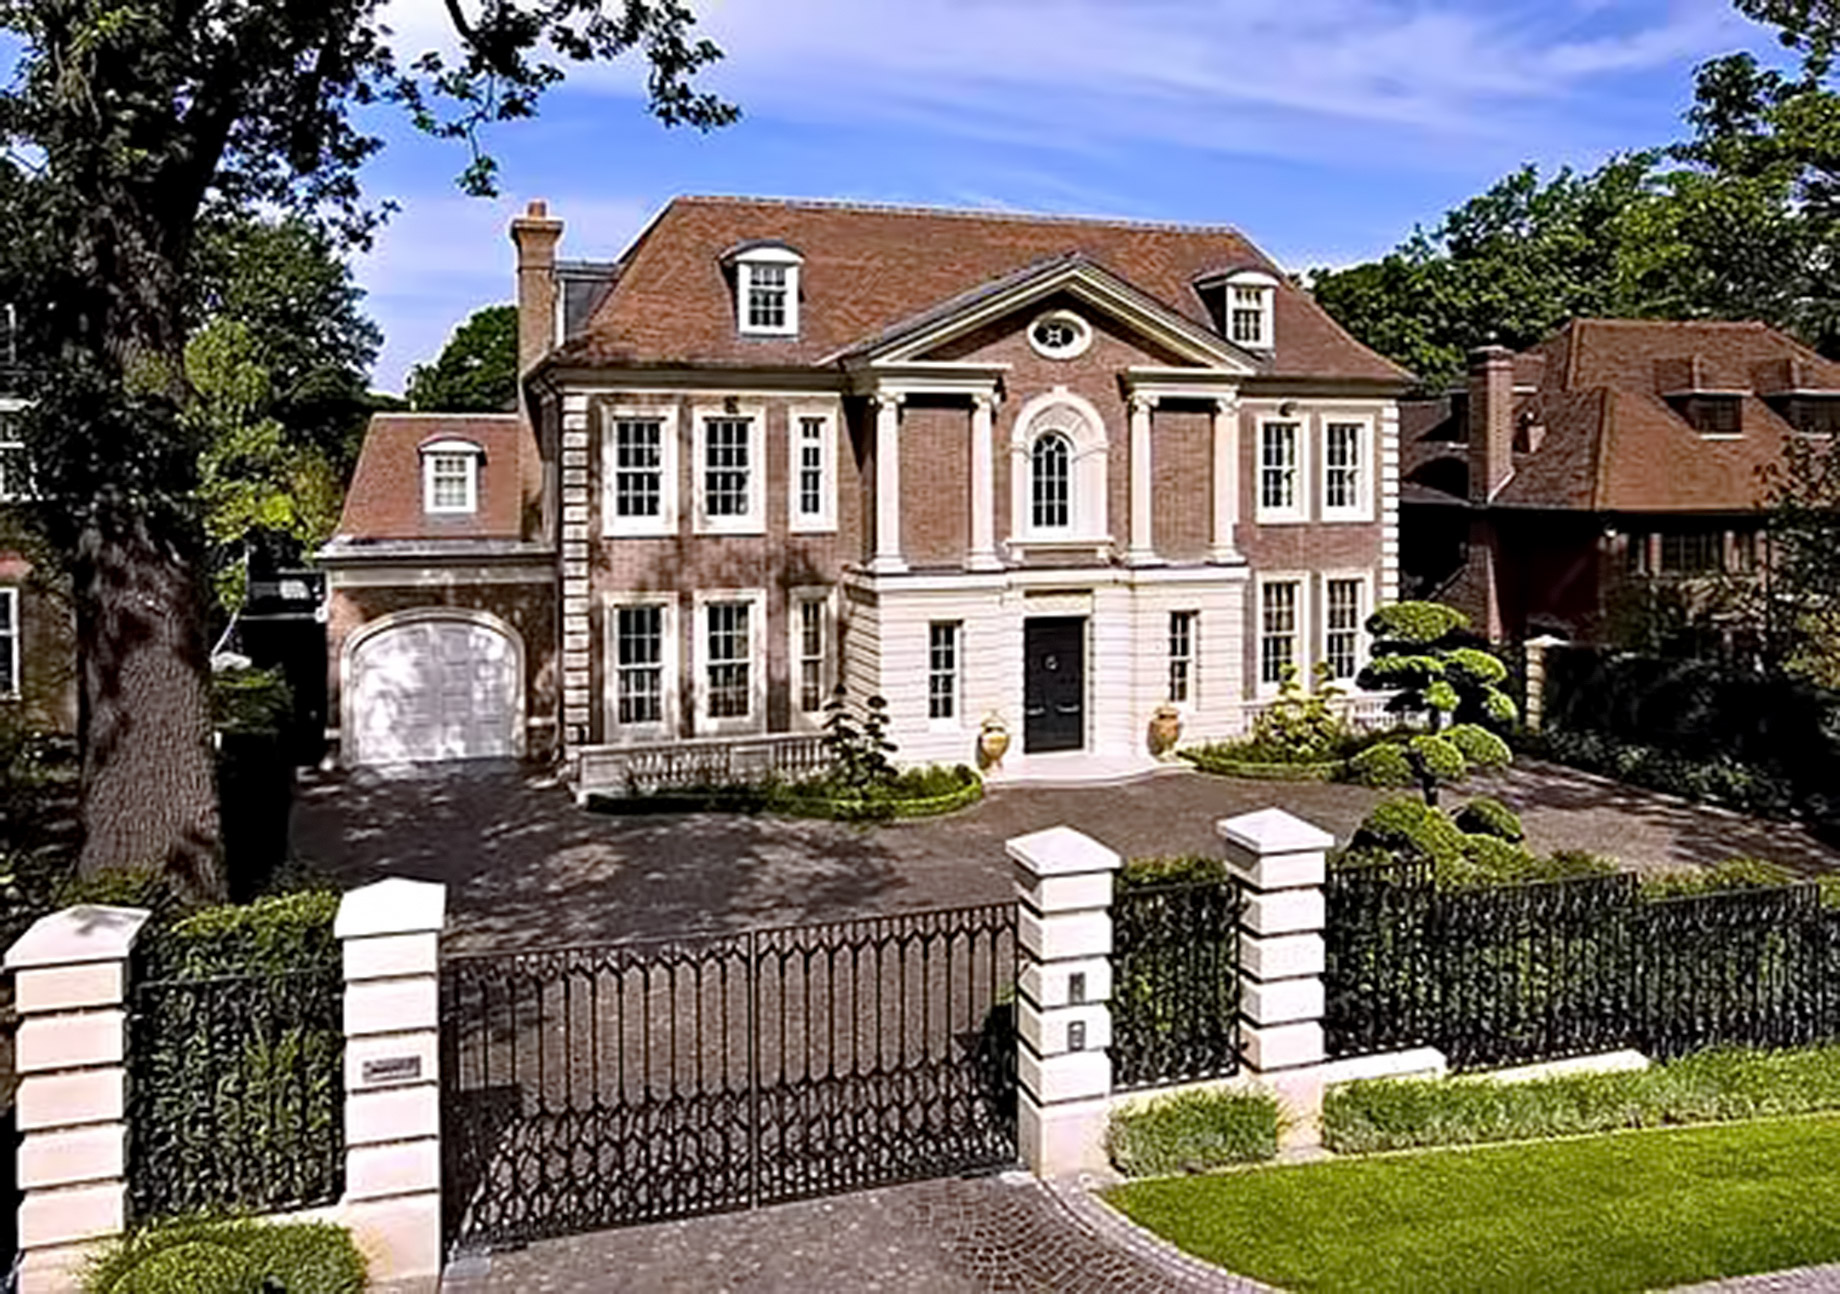 Lev Leviev Palladio Residence - Compton Ave, Highgate, London, England, UK